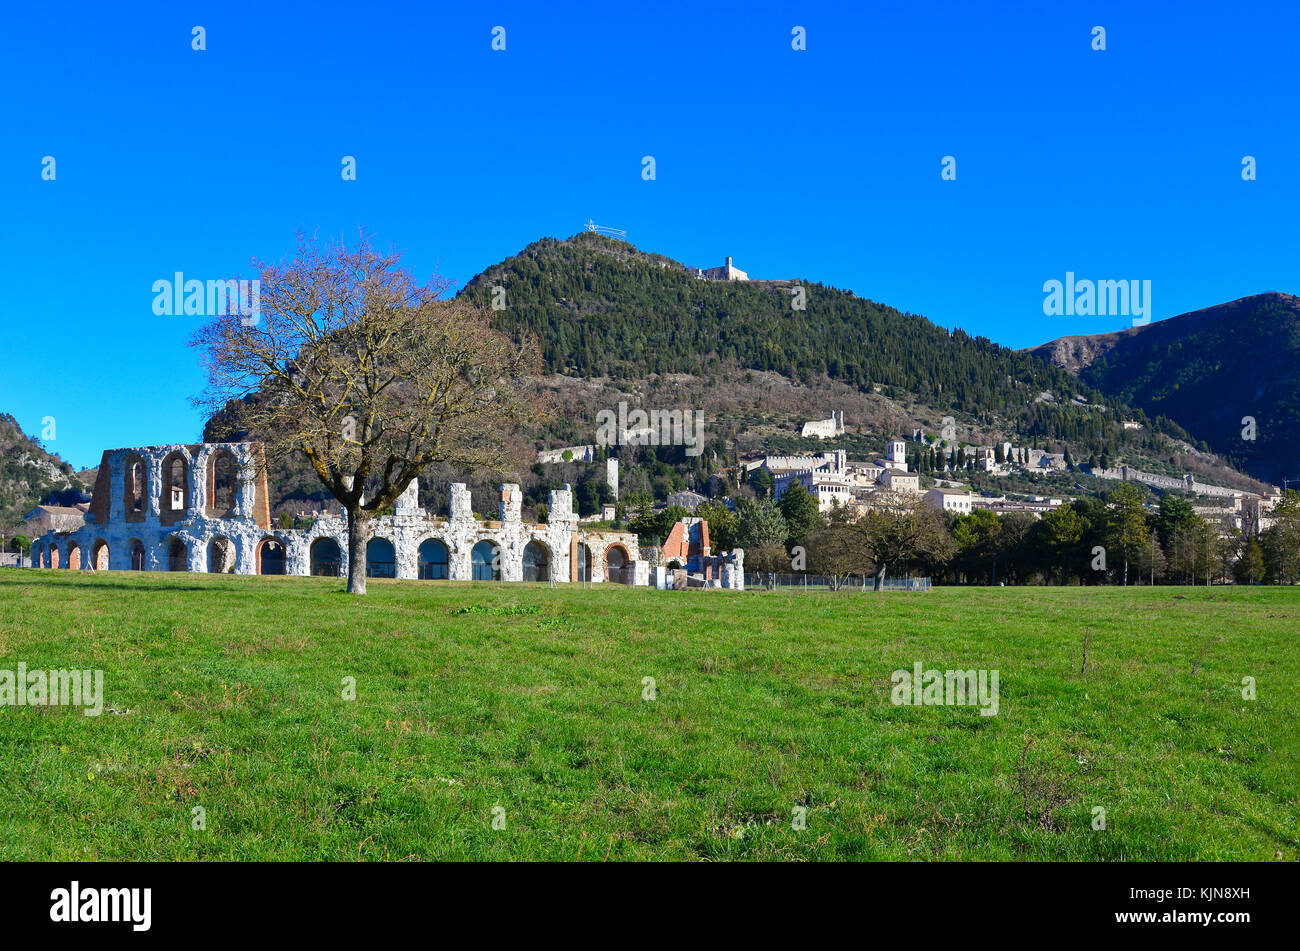 Ceri Ceri Gubbio Stock Photos And Ceri Gubbio Stock Images Alamy